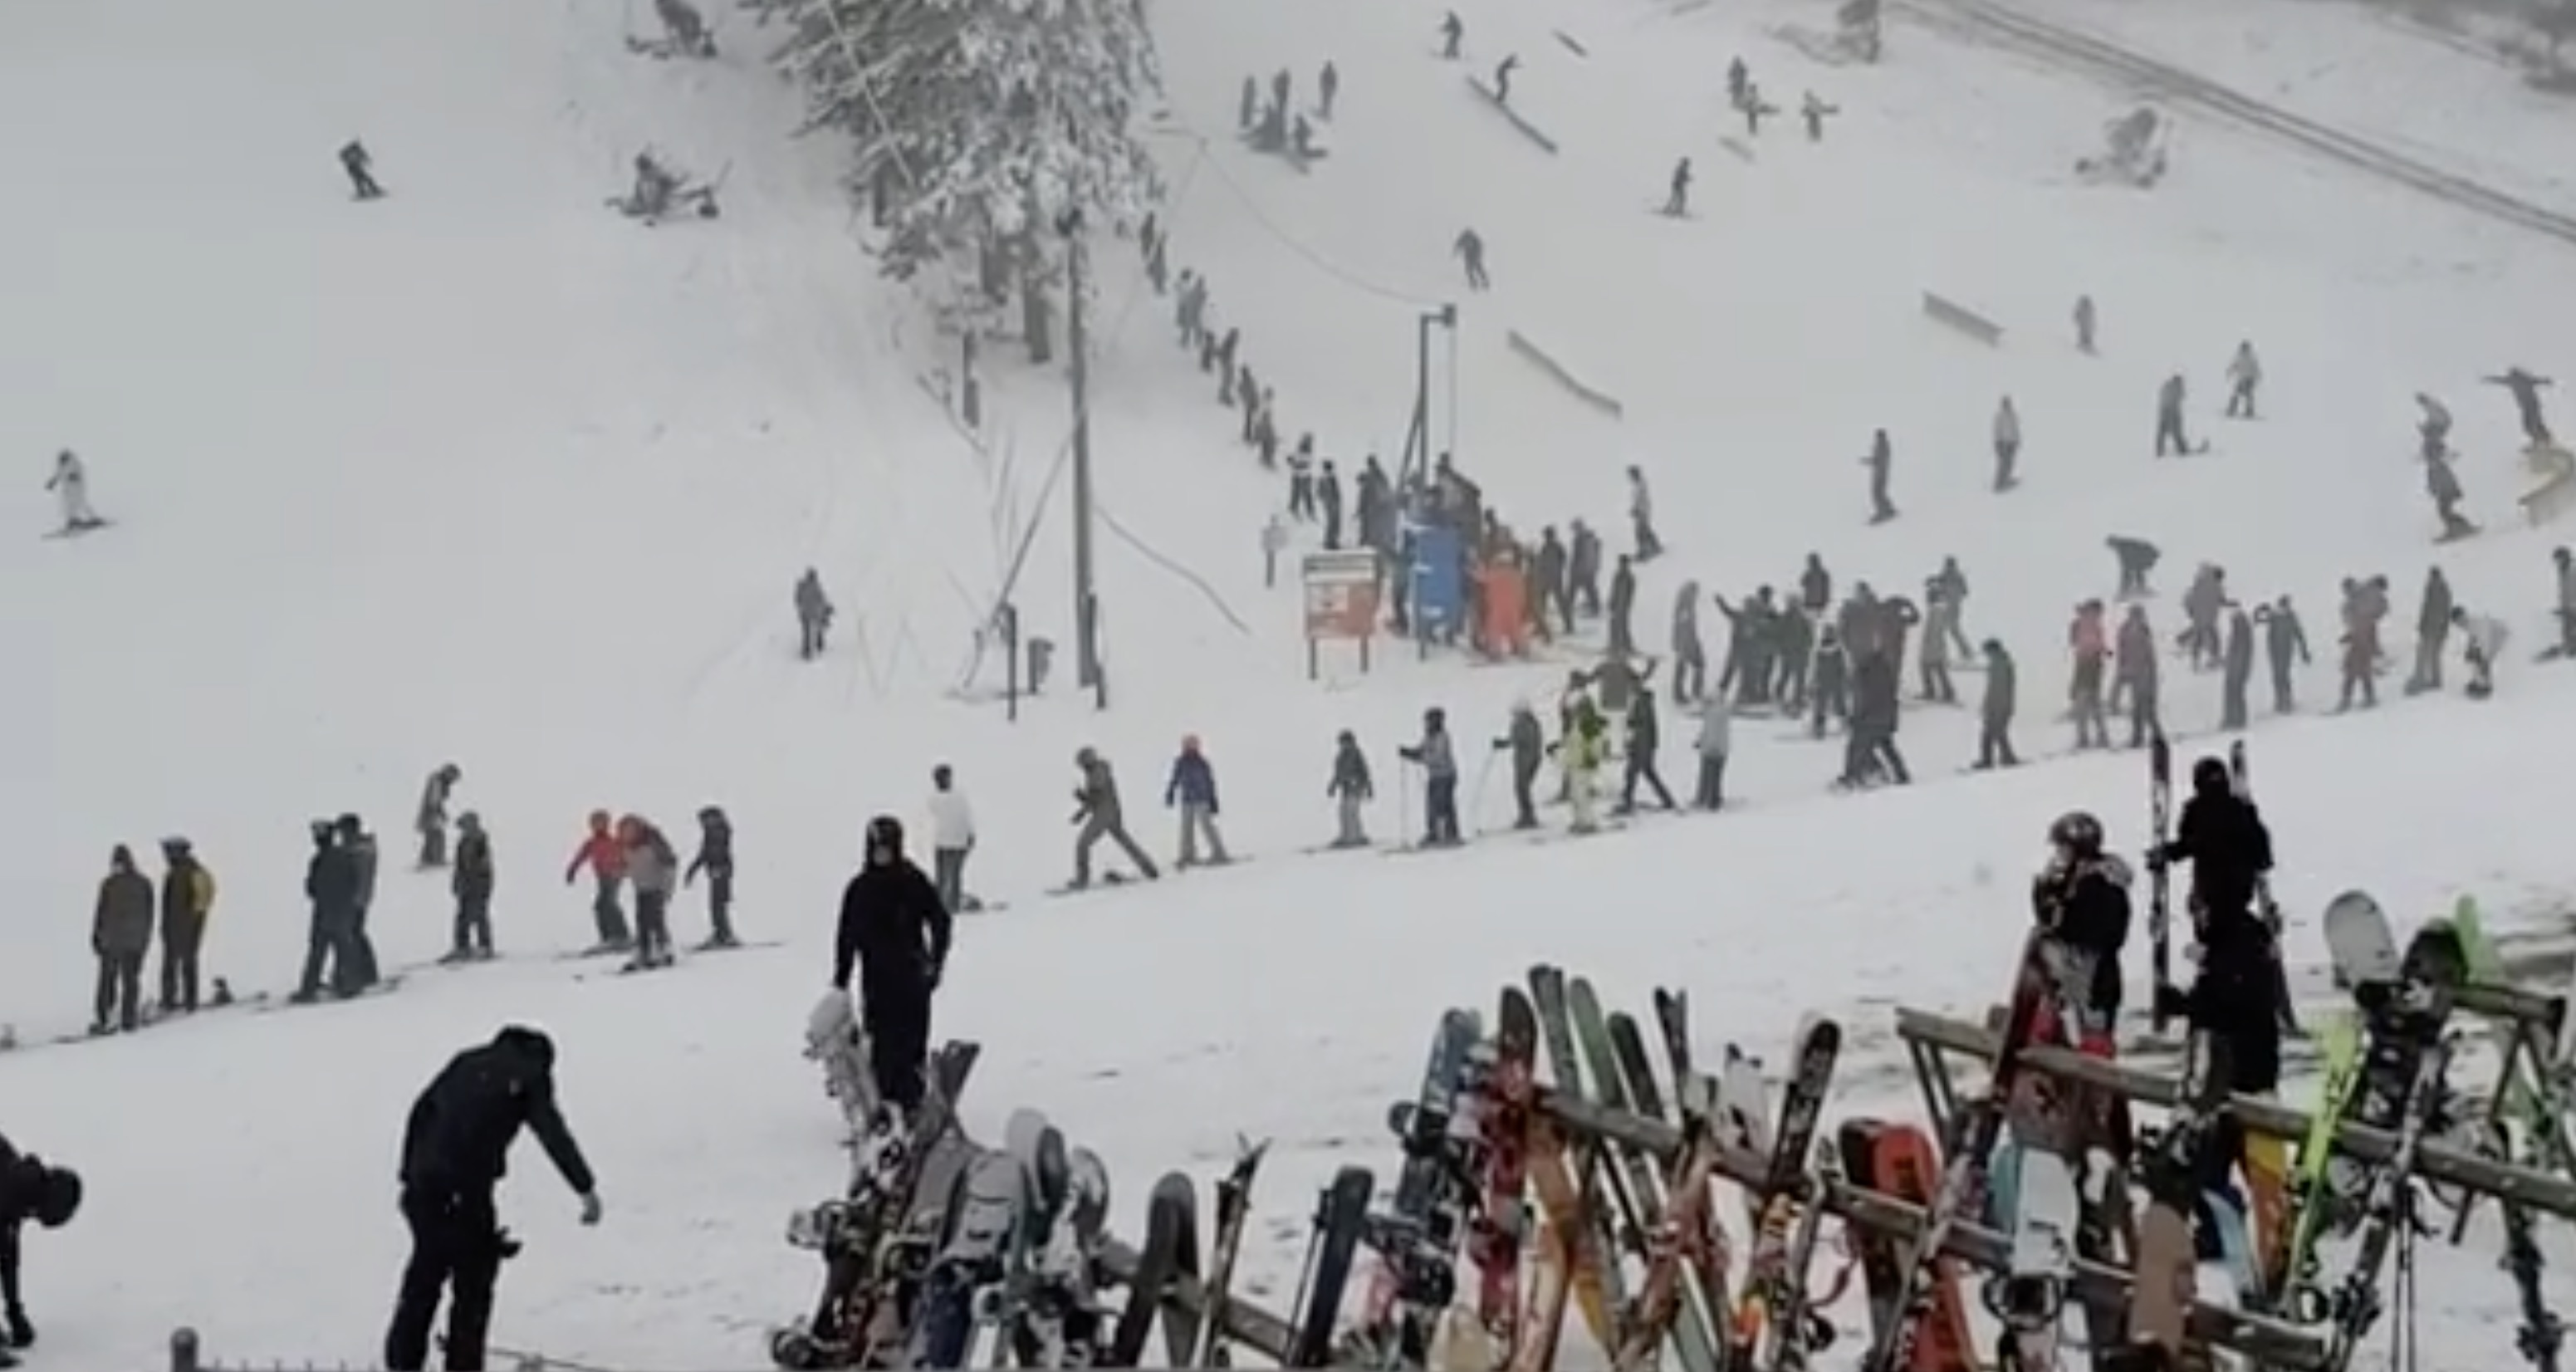 Lift Ticket Sales Capped After Hundreds Of Skiers Show Up For Trollhaugen's Opening Day | Unofficial Networks